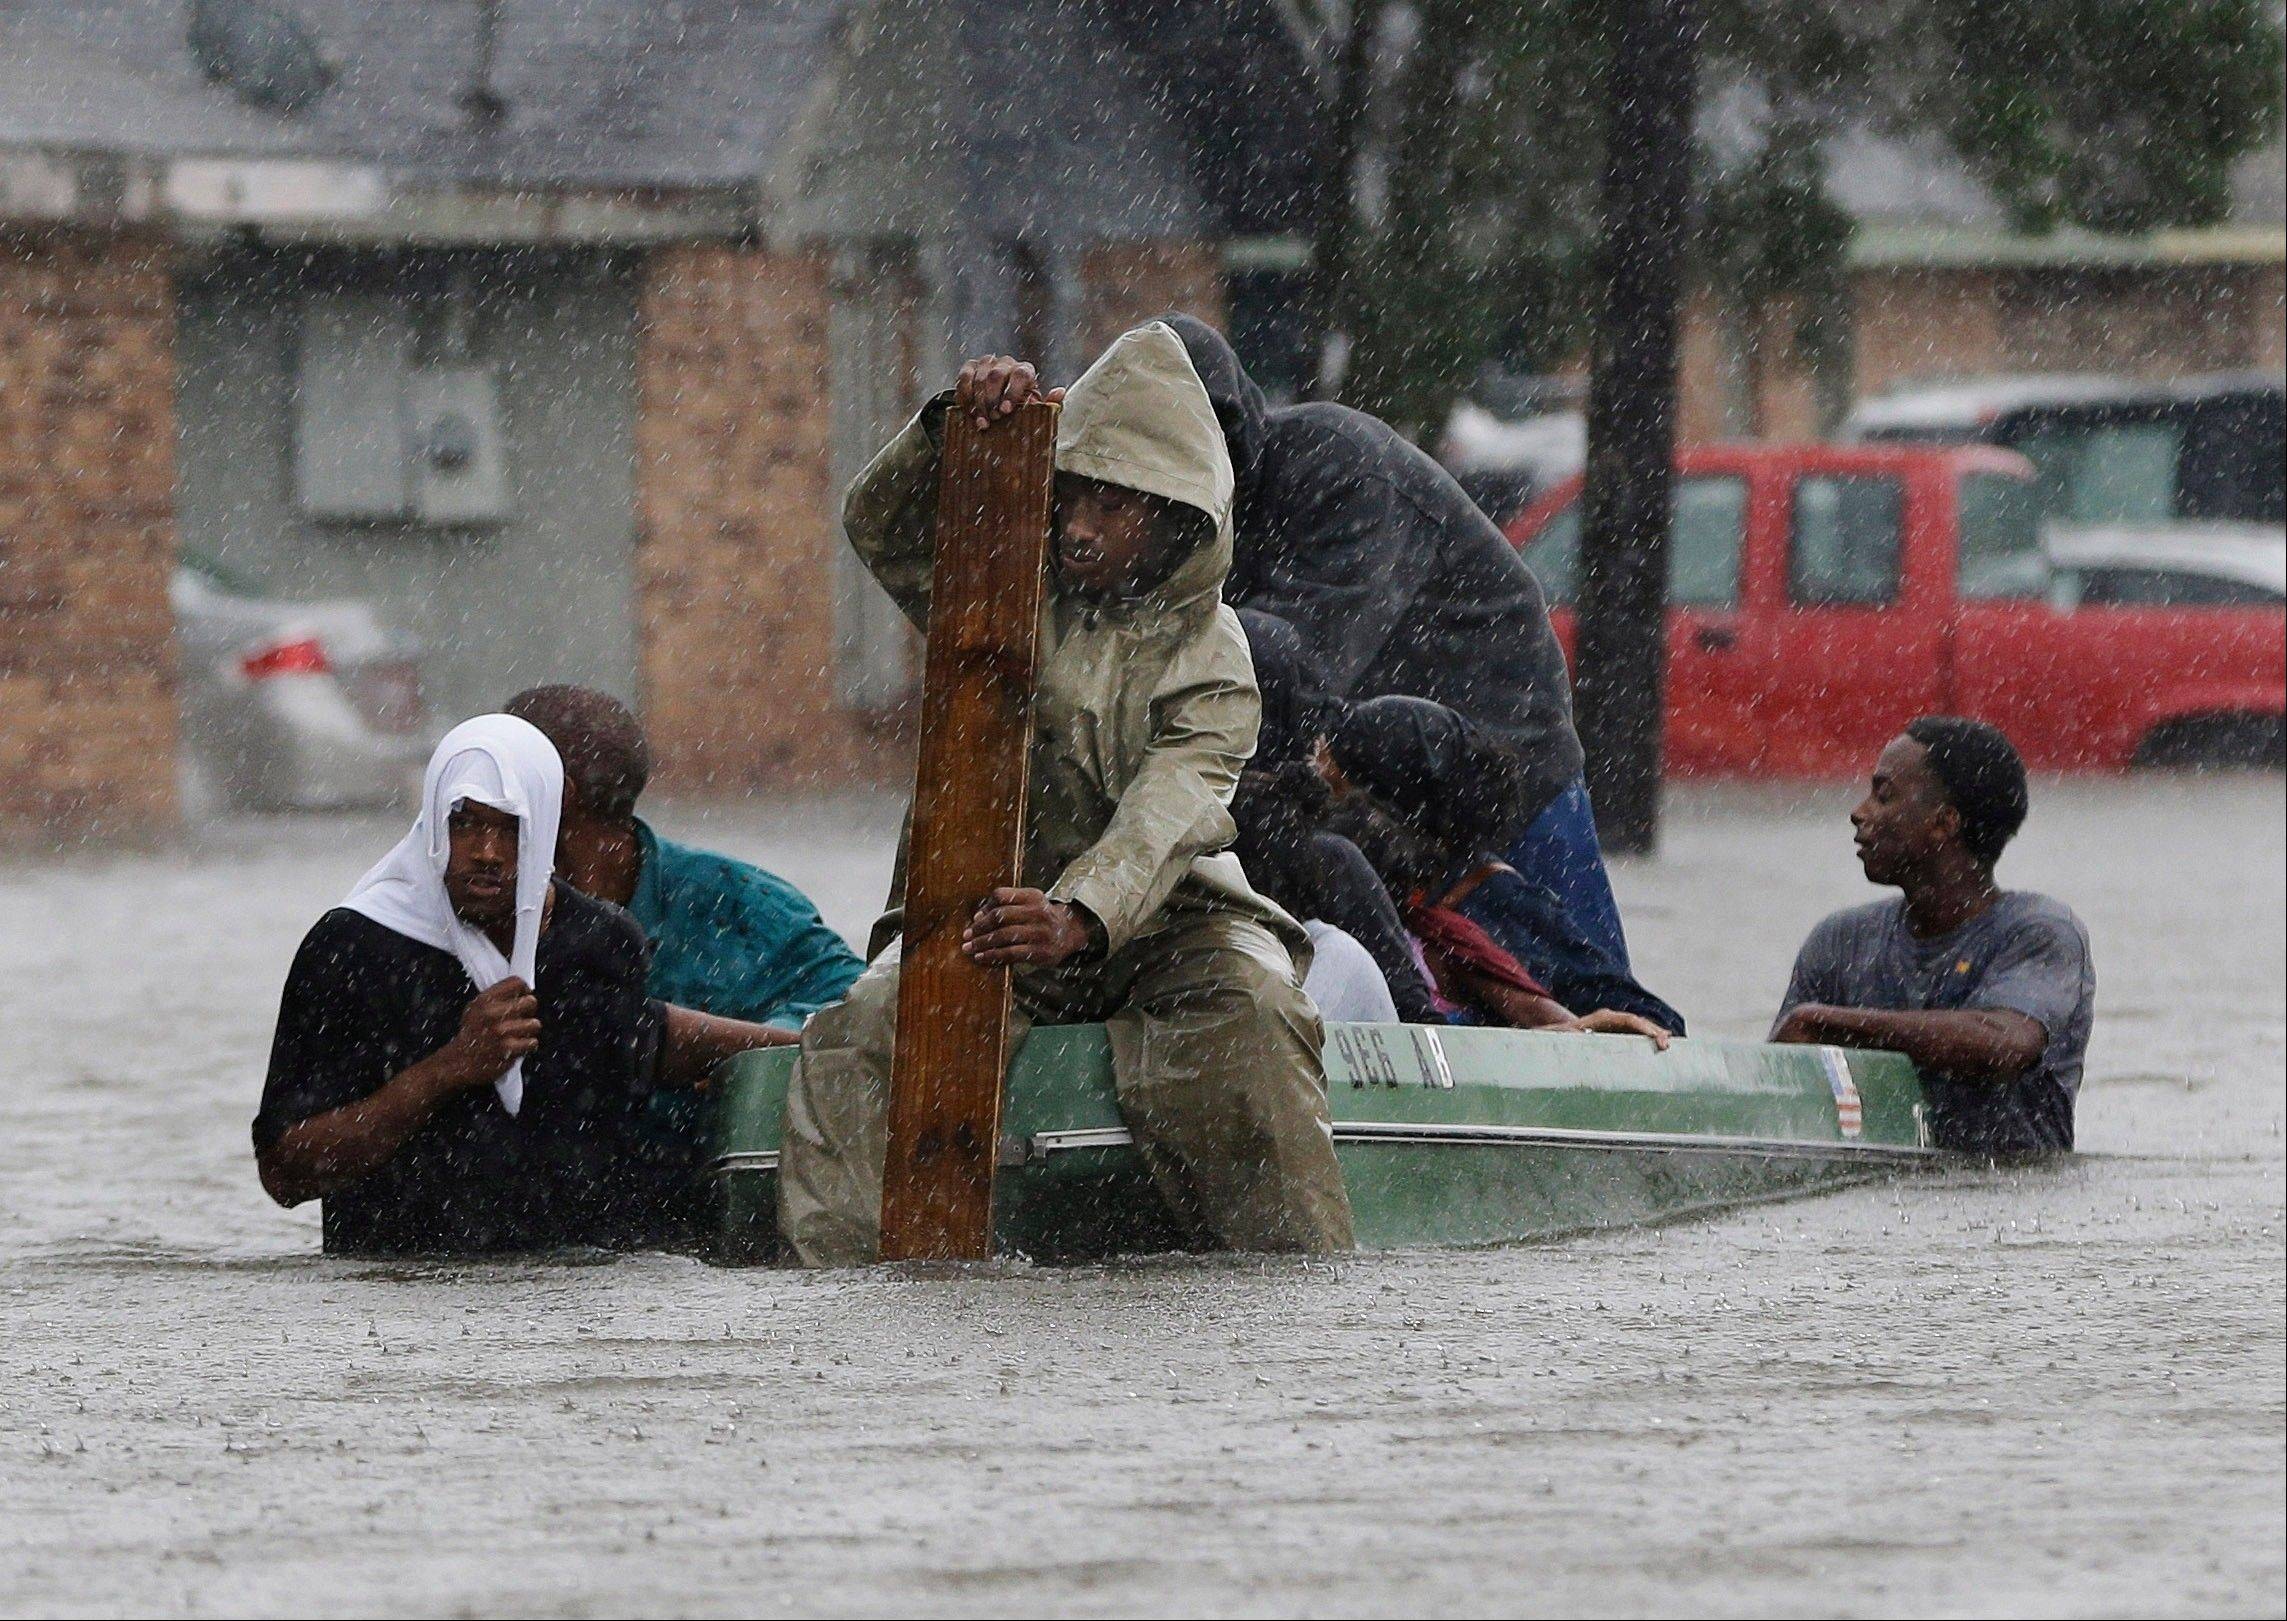 Residents evacuate their flooded neighborhood in LaPlace, La. during Hurricane Isaac. Federal forecasters are predicting yet another busy hurricane season with 13 to 20 named storms.